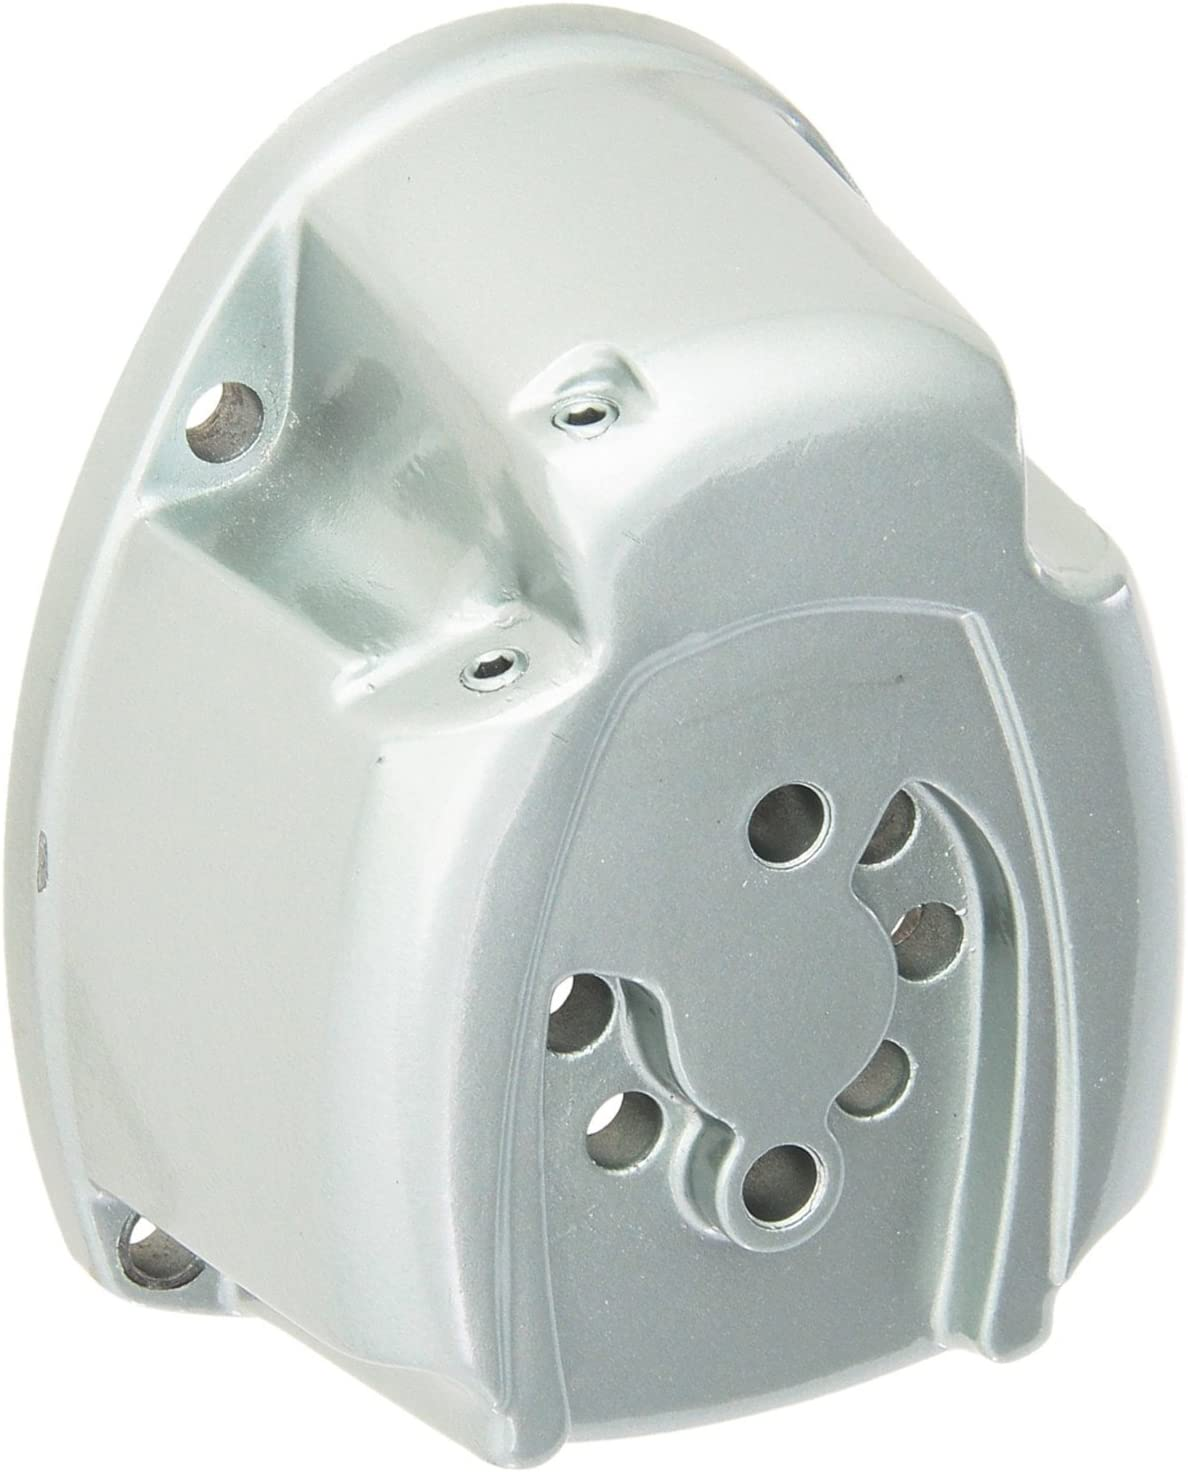 Hitachi 888006 Time sale Replacement Part for Tool Power shop Cover Exhaust